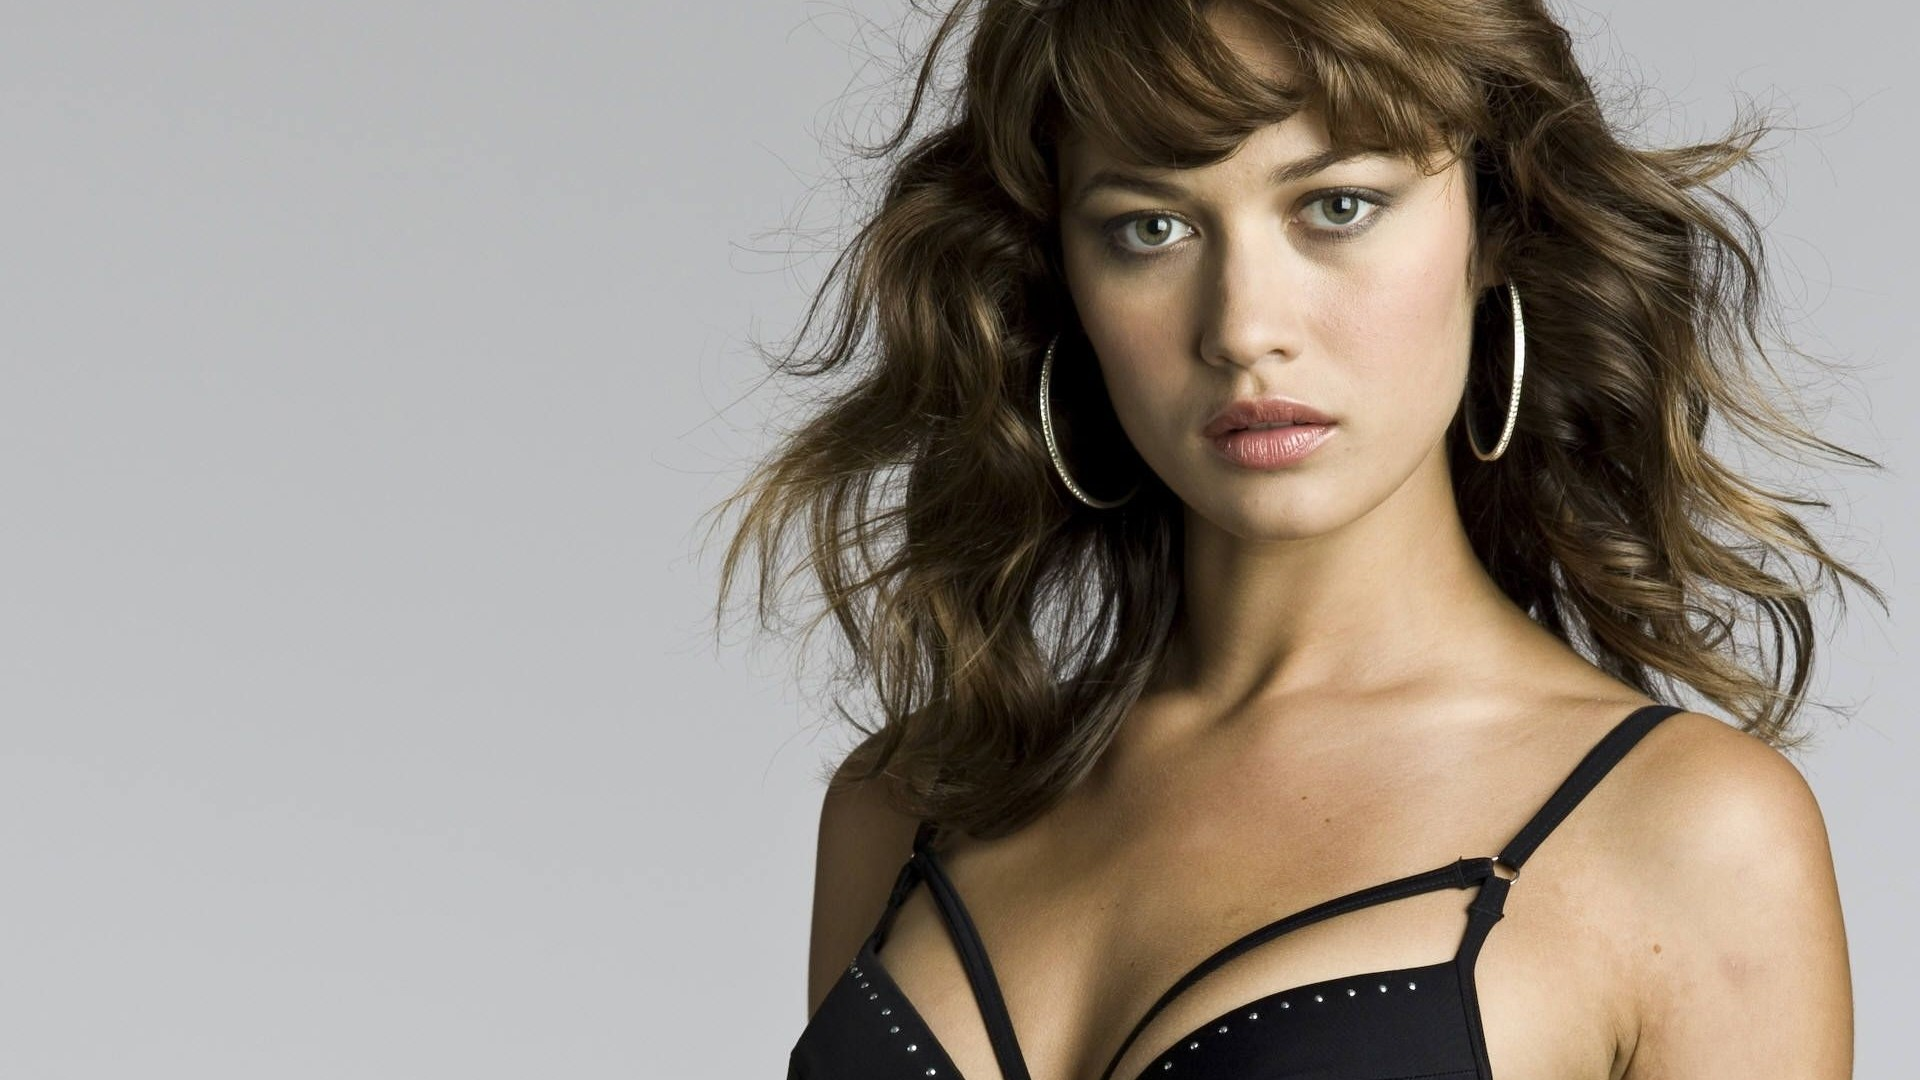 olga kurylenko hd wallpapers full hd pictures. Black Bedroom Furniture Sets. Home Design Ideas